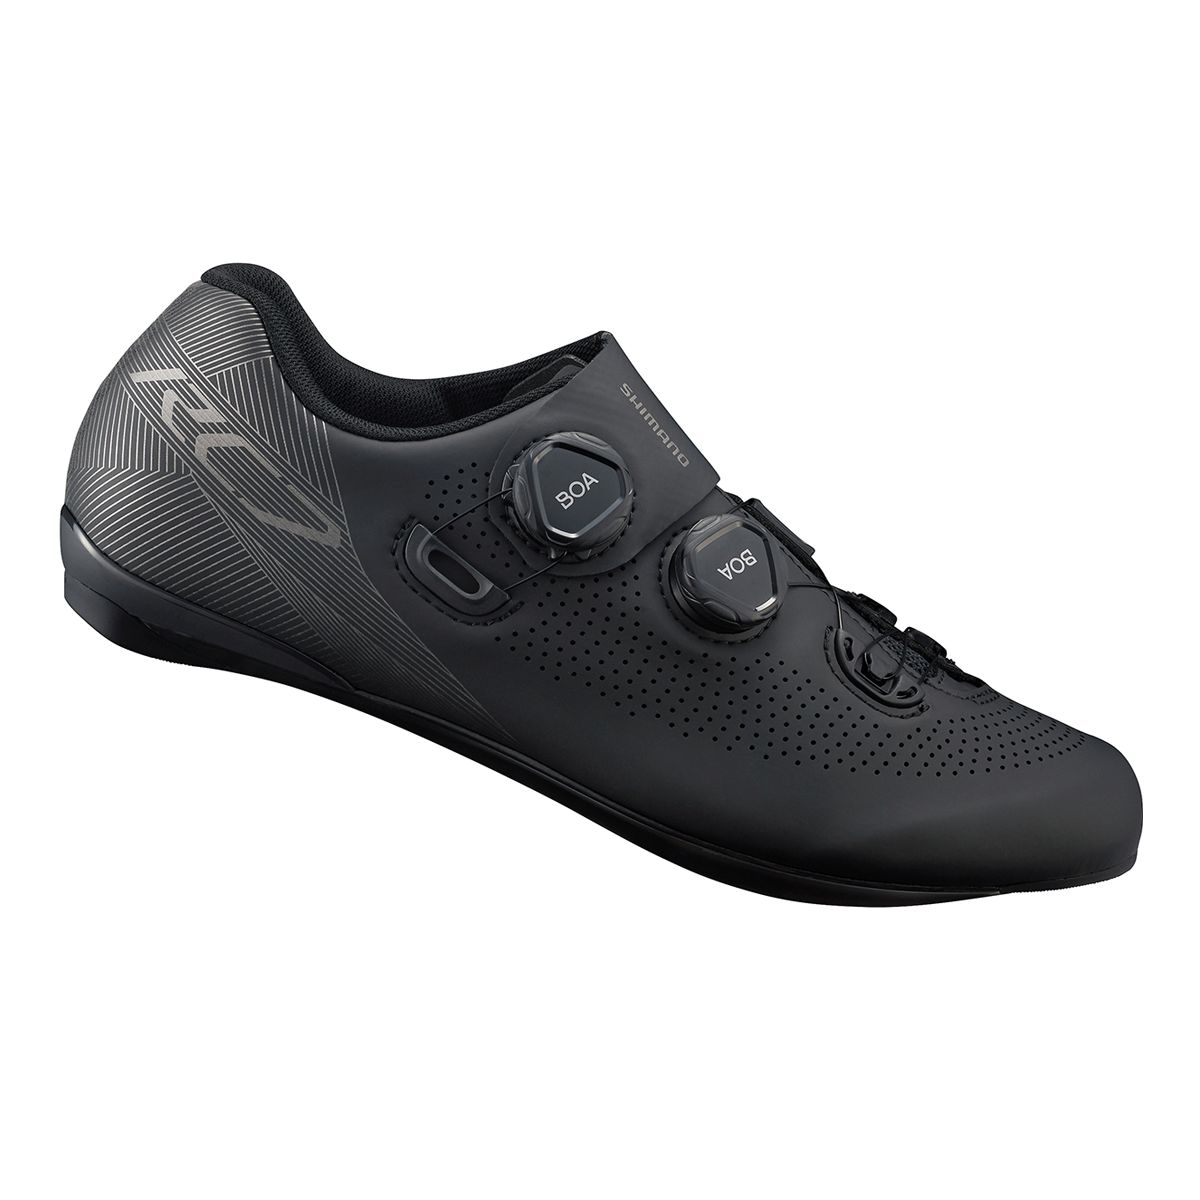 SH-RC7 Road Shoes – Wide Version